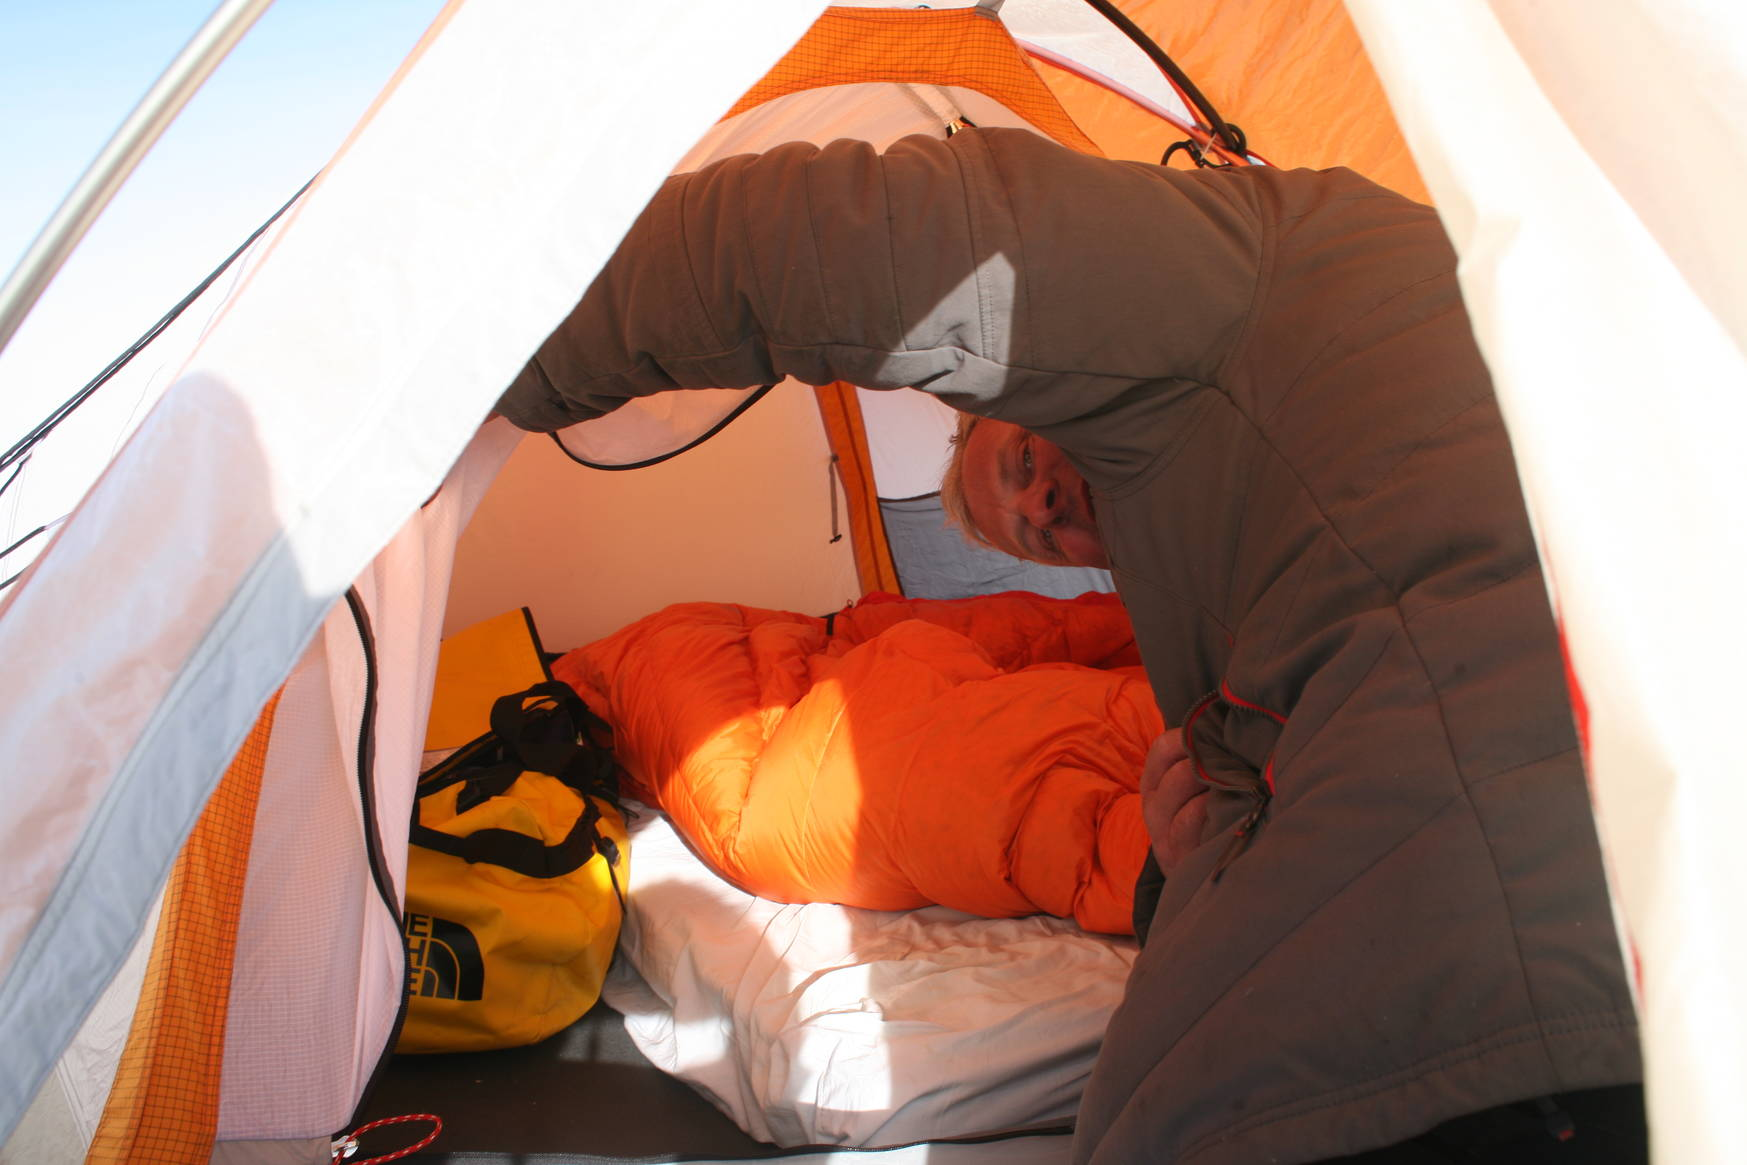 It's unheated, good that there is a cozy sleeping bag inside!